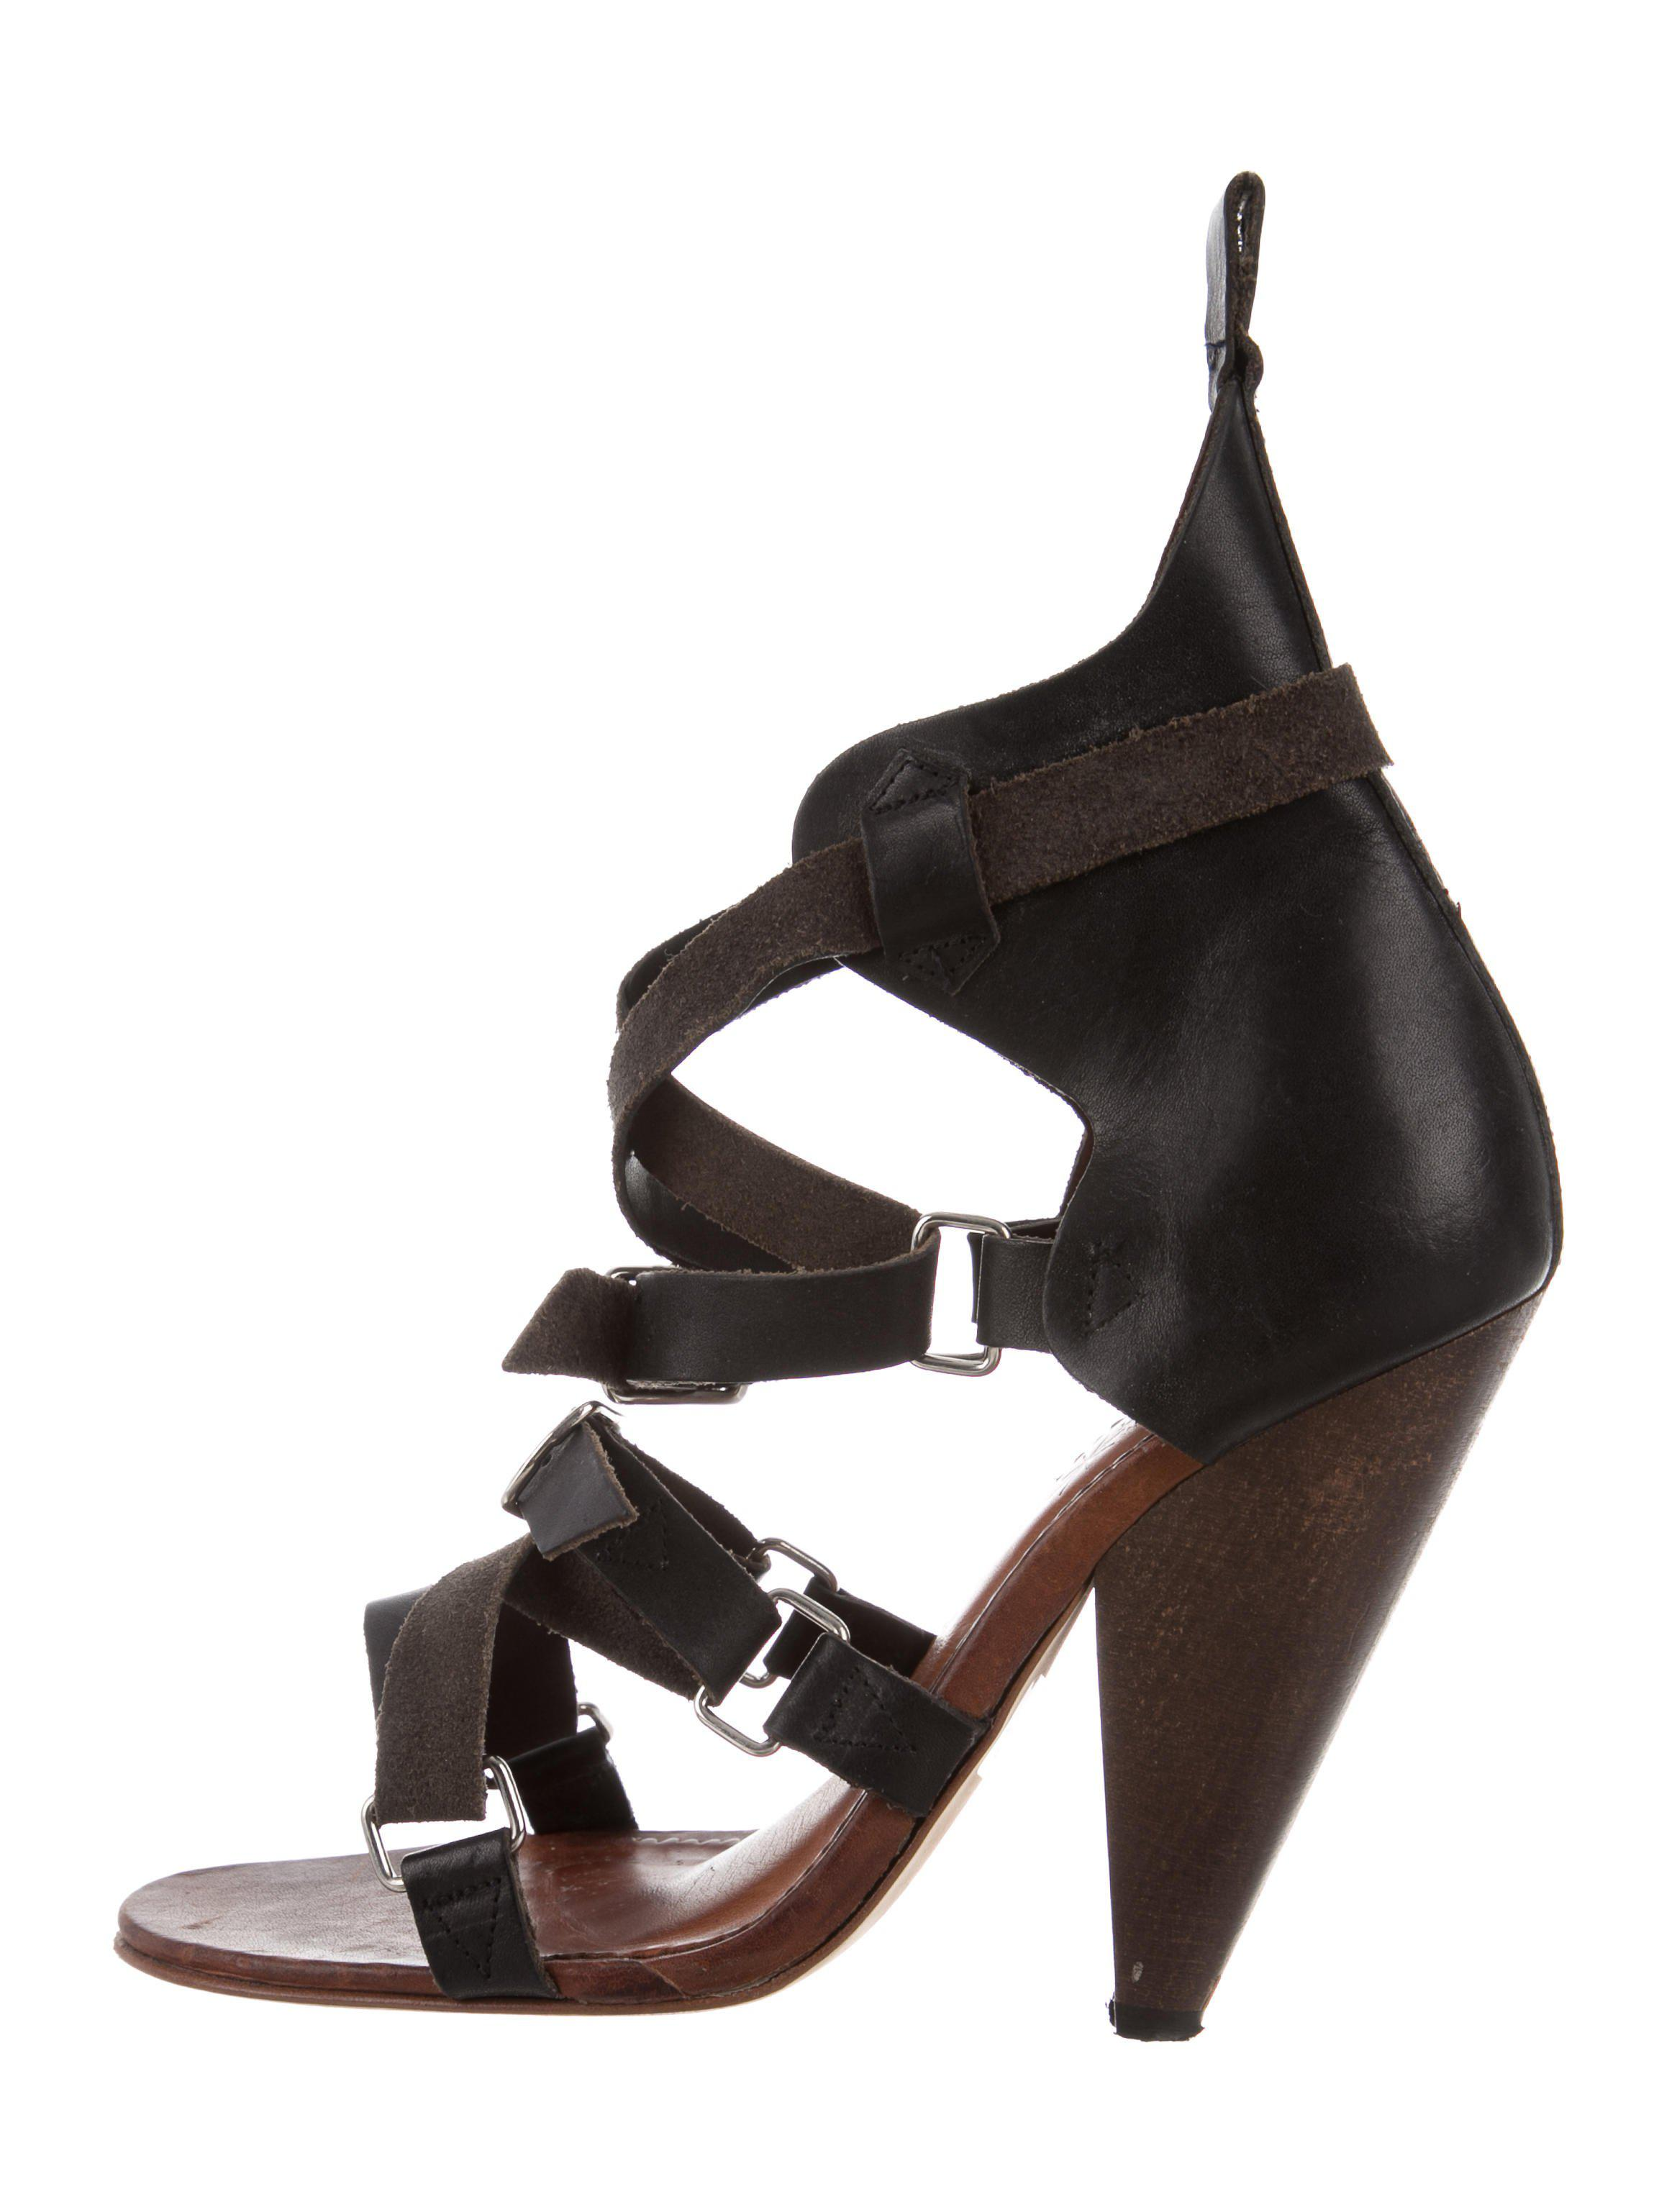 cheap sale 100% original Isabel Marant Leather Multistrap Sandals buy cheap amazing price discount Cheapest uDGdBYD0fT